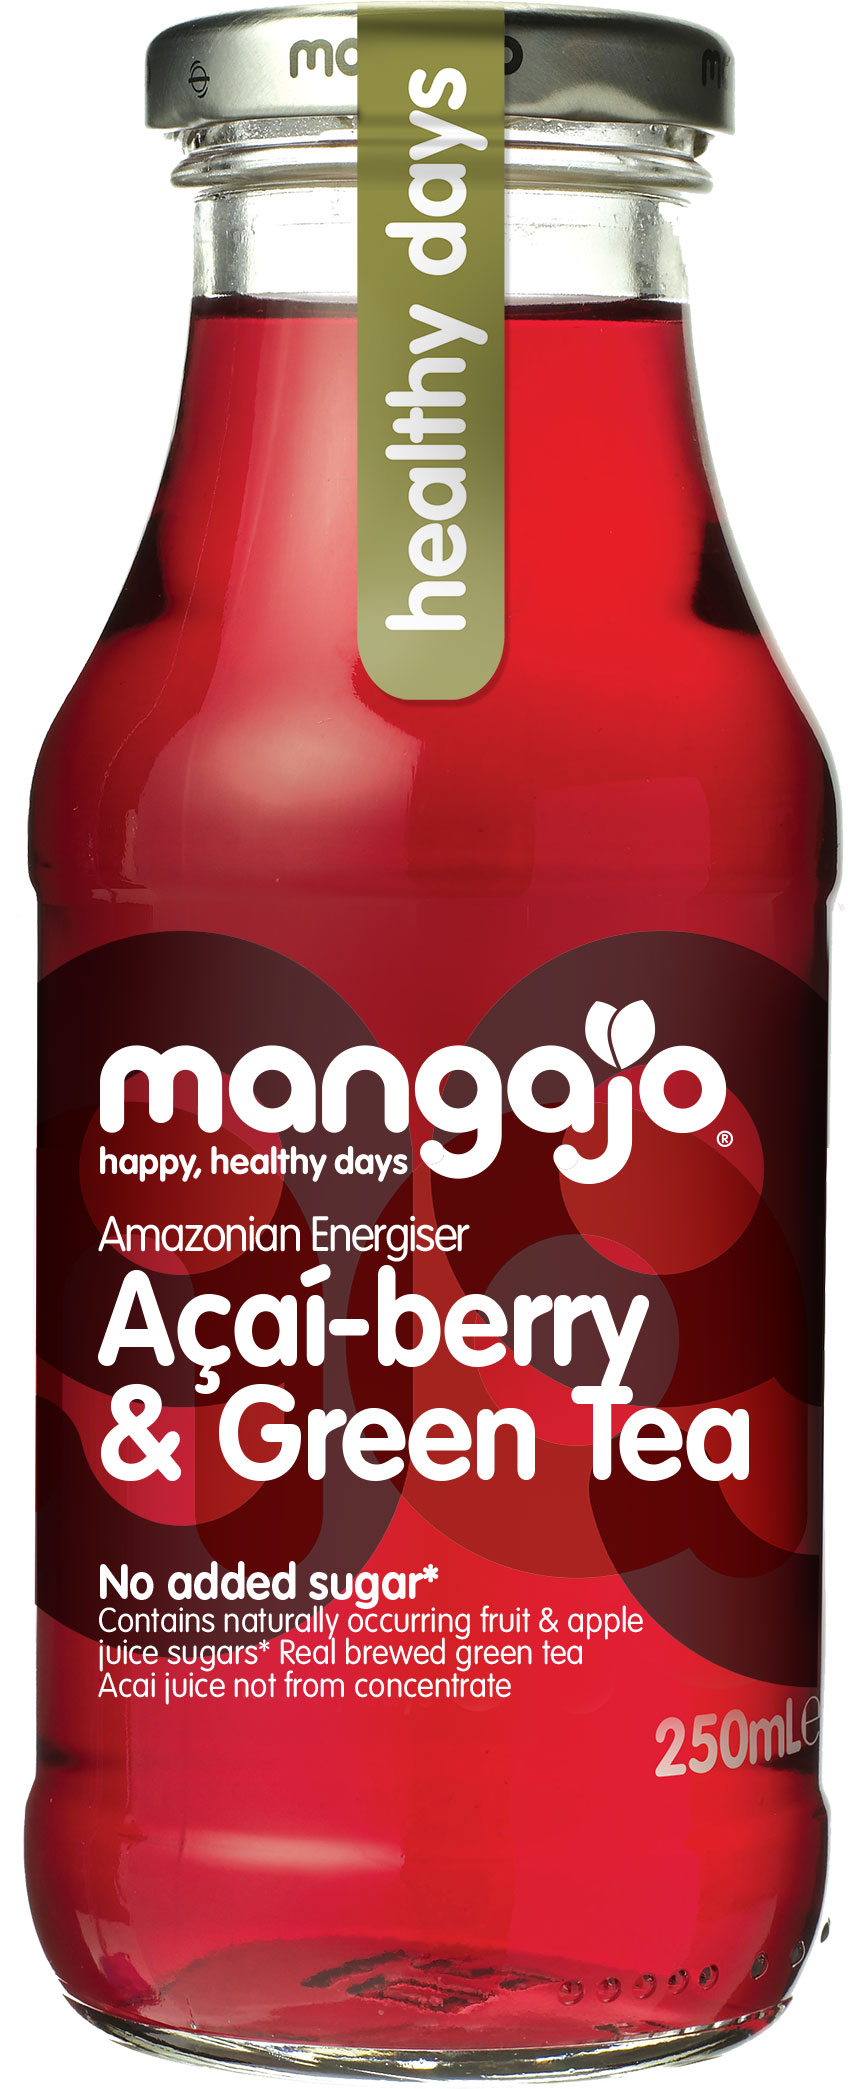 Mangajo - Acai Berry & Green Tea 250ml Bottle